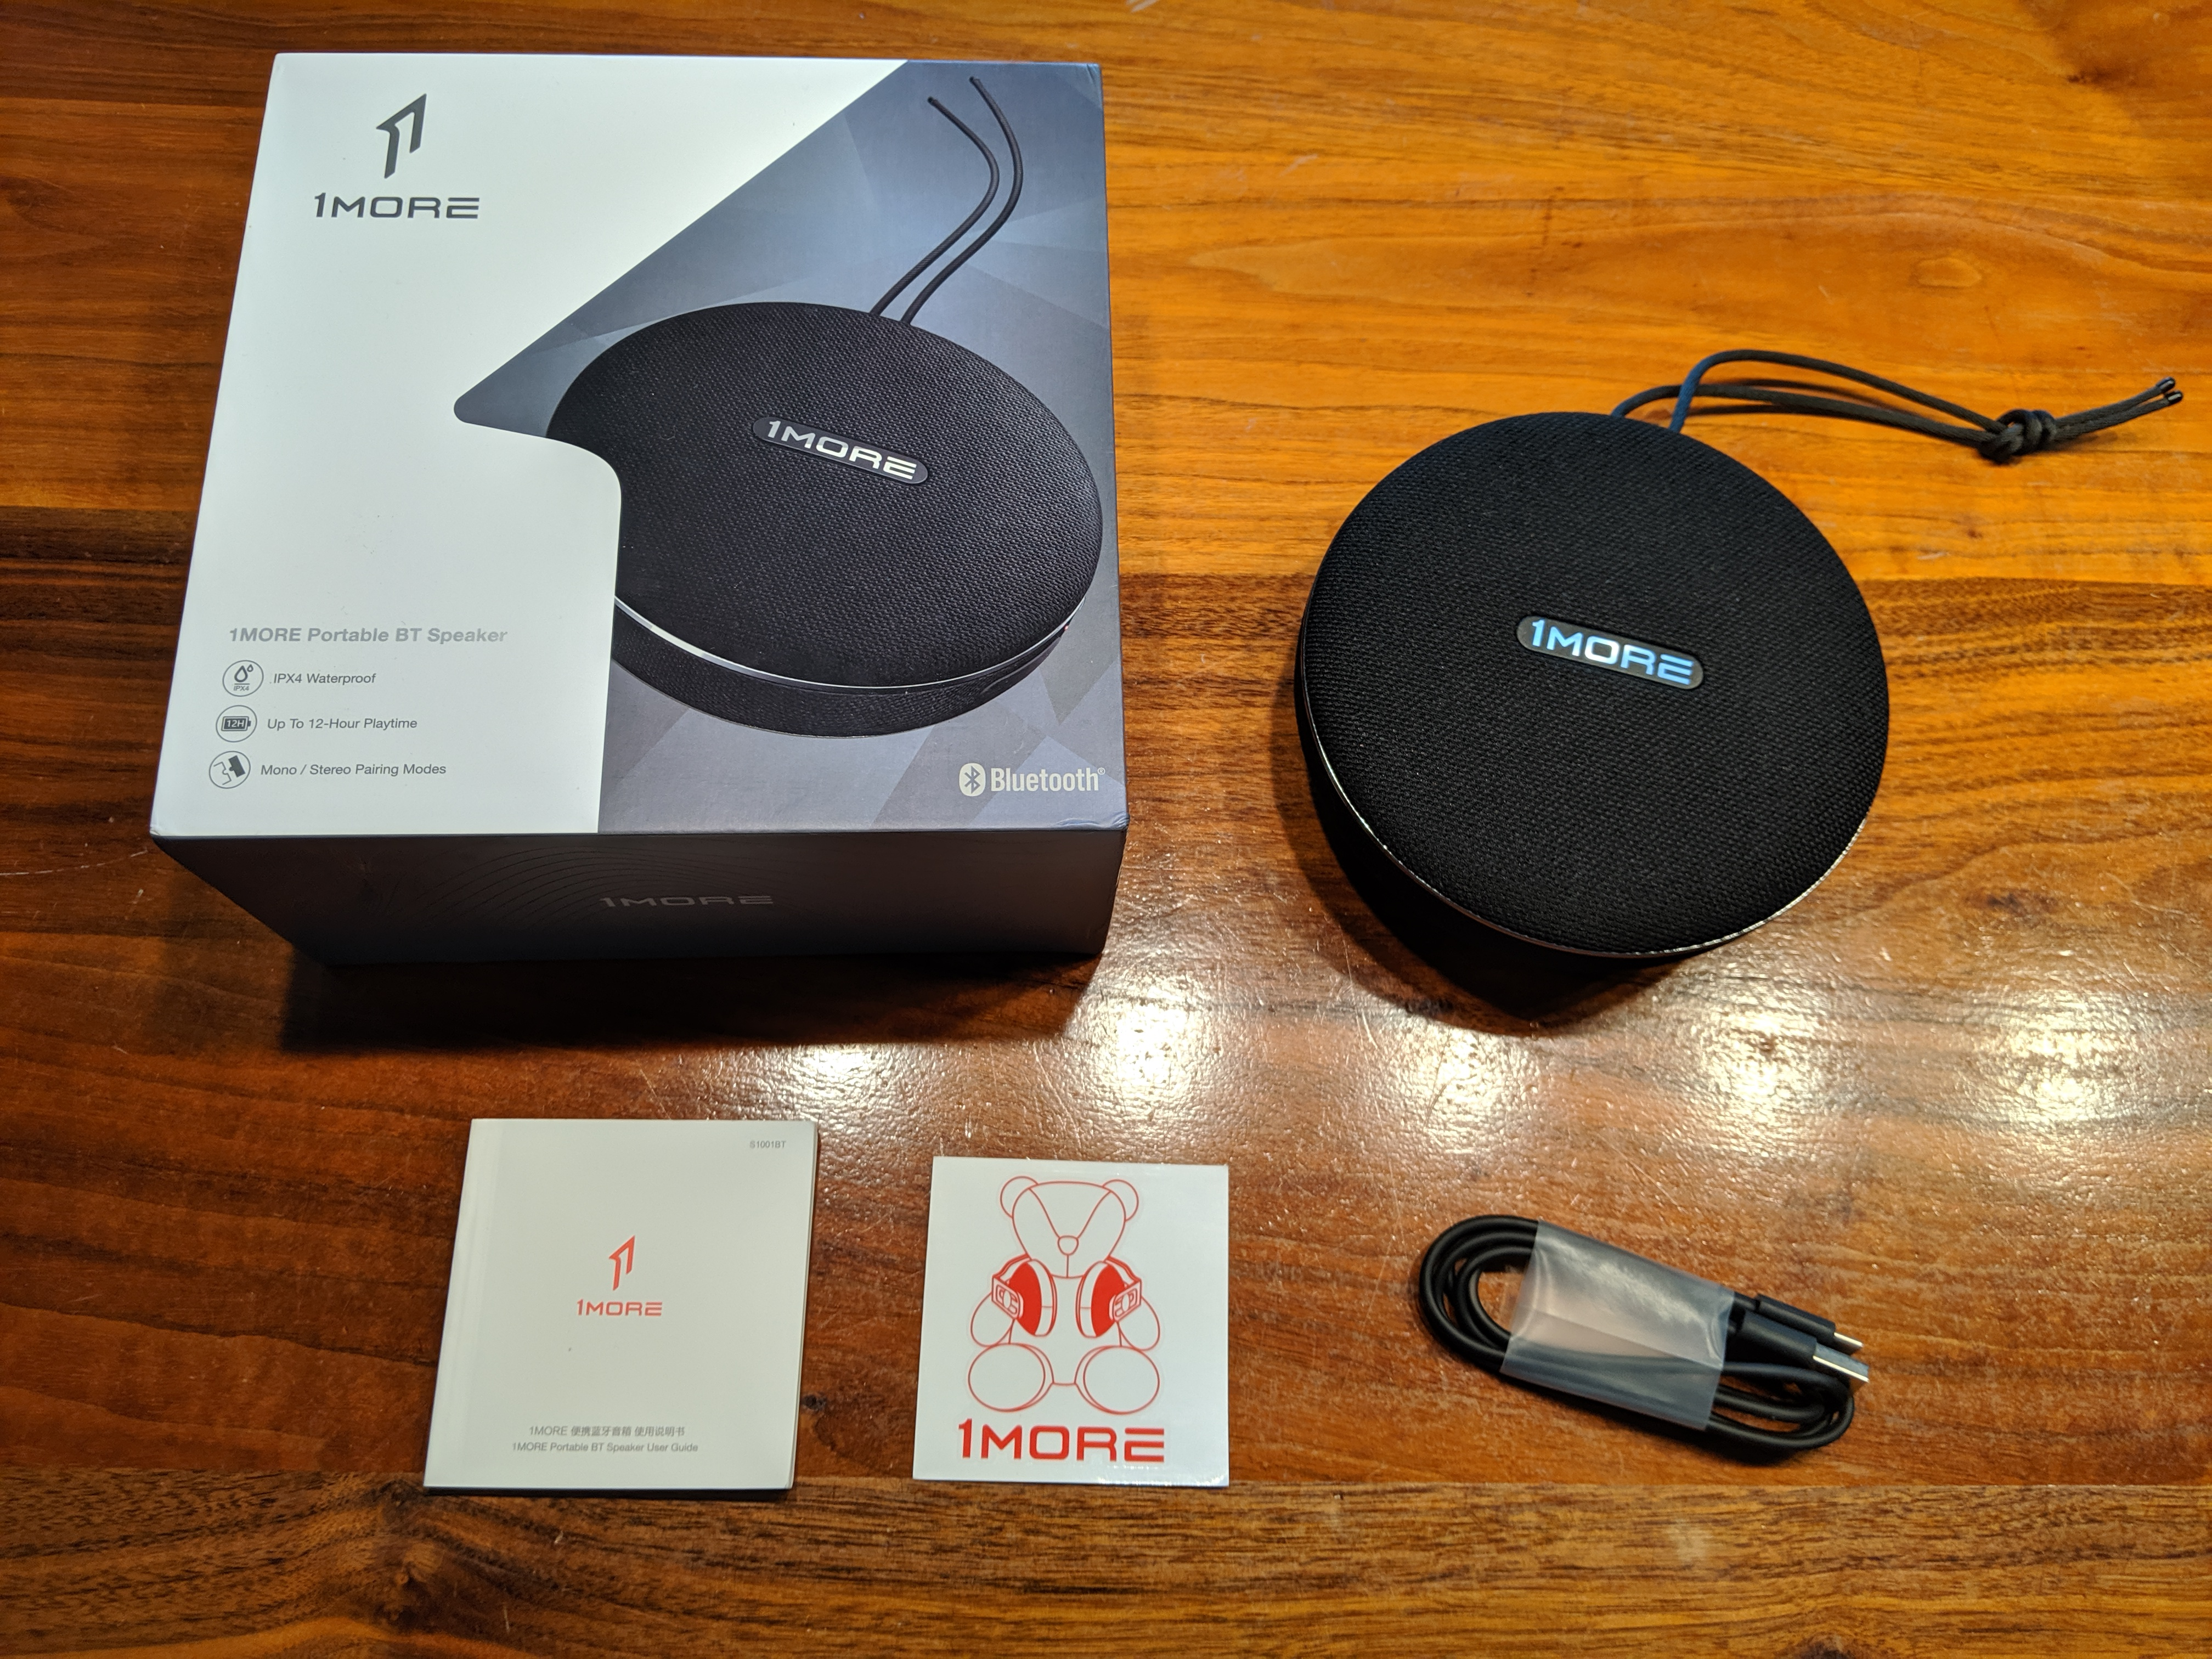 1more Portable Bluetooth Speaker A Cheap Entry Into The Middle Class Igor Slab